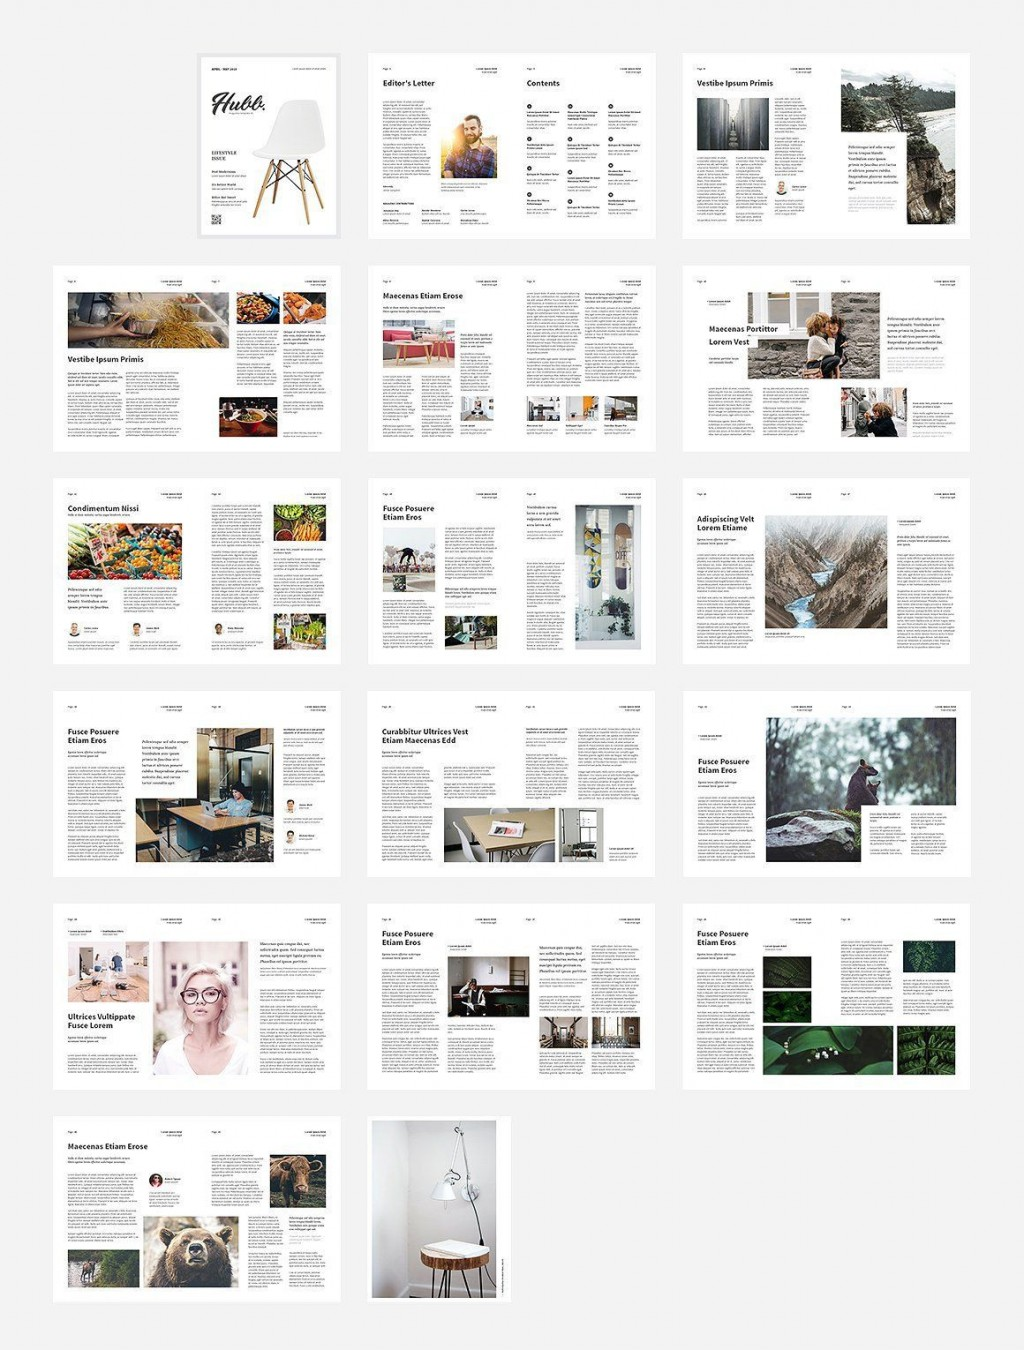 001 Magnificent Family History Book Template Image  Sample Writing ALarge